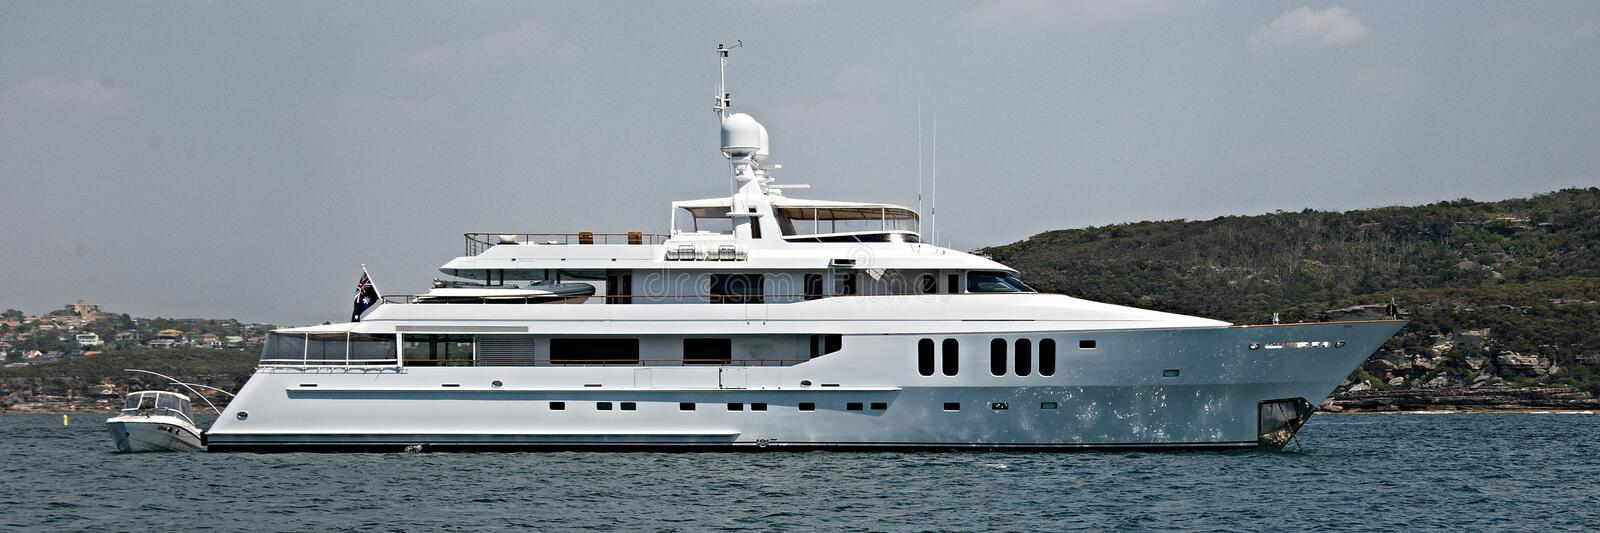 A 90 ton plus, luxury cruising motor Super Yacht at anchor in Sy. A fully equipted Australian 45 meter 90 ton plus, luxury cruising motor super yacht anchored in stock photography